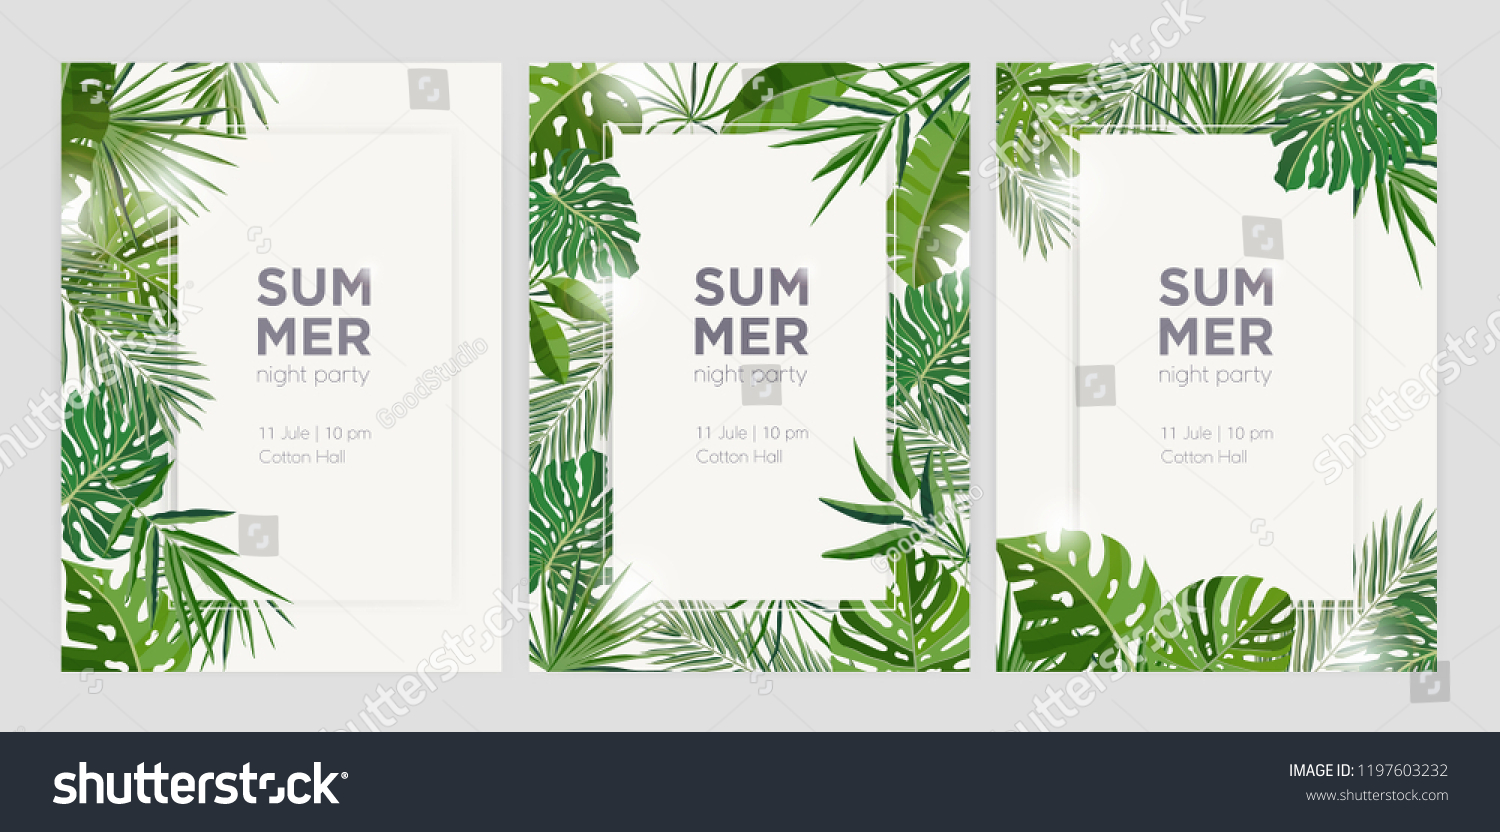 Collection of vertical summer backgrounds with frames or borders made of green tropical palm leaves or jungle exotic foliage and place for text. Seasonal colorful realistic vector illustration.